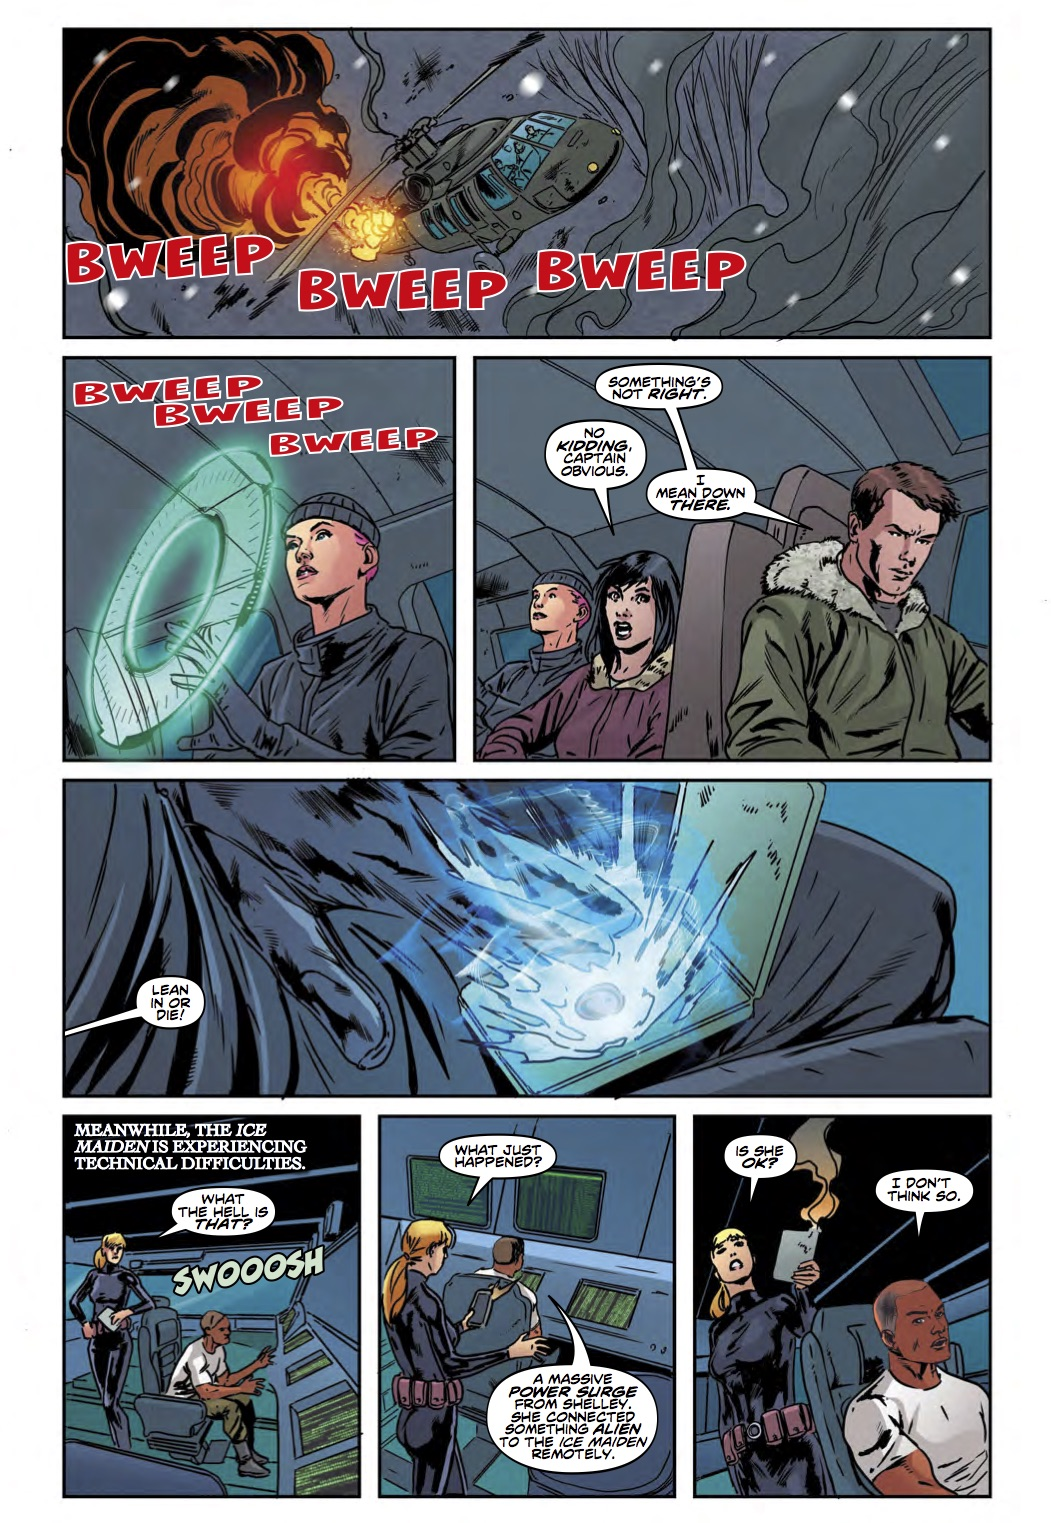 Torchwood #3 - Page 1 (Credit: Titan )